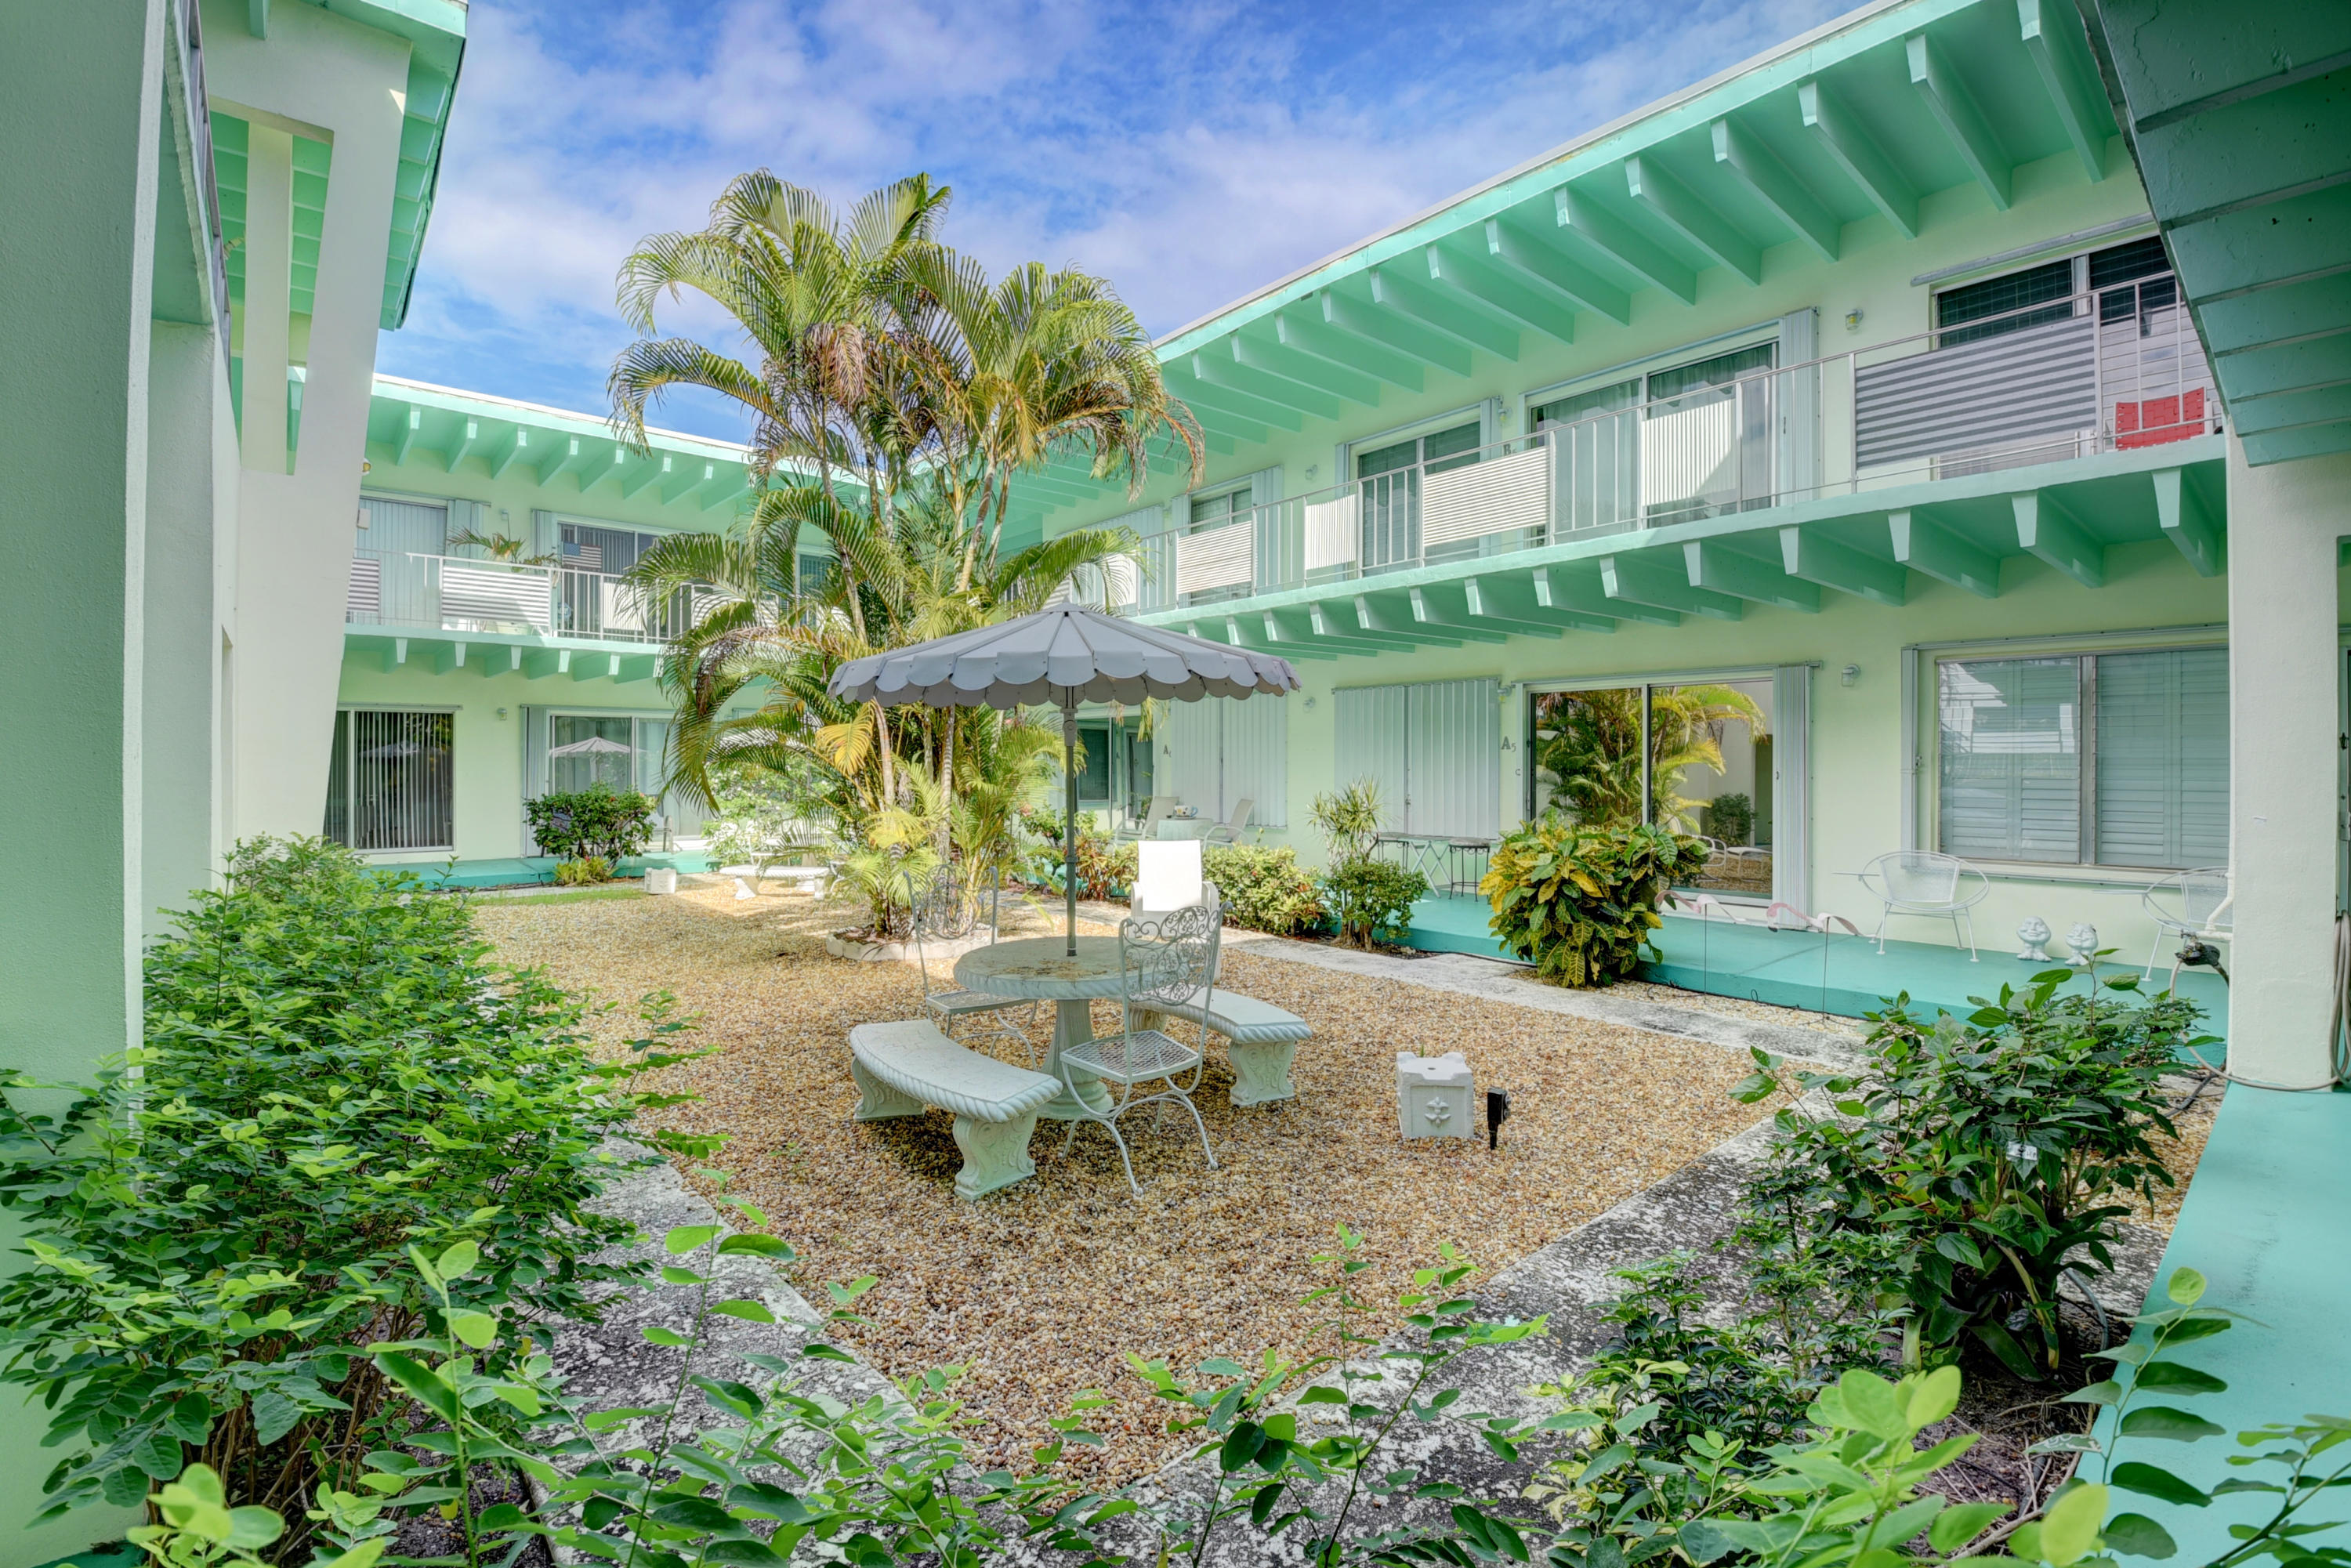 Enjoy the quaint Historical District of the Parrot Cove neighborhood in this great 1 bedroom  & 1 bathroom condo located in Caribe. This unit features updates in both the kitchen and the bathroom and full hurricane protection. Caribe is conveniently located near Downtown Lake Worth, shopping, dining and entertainment.